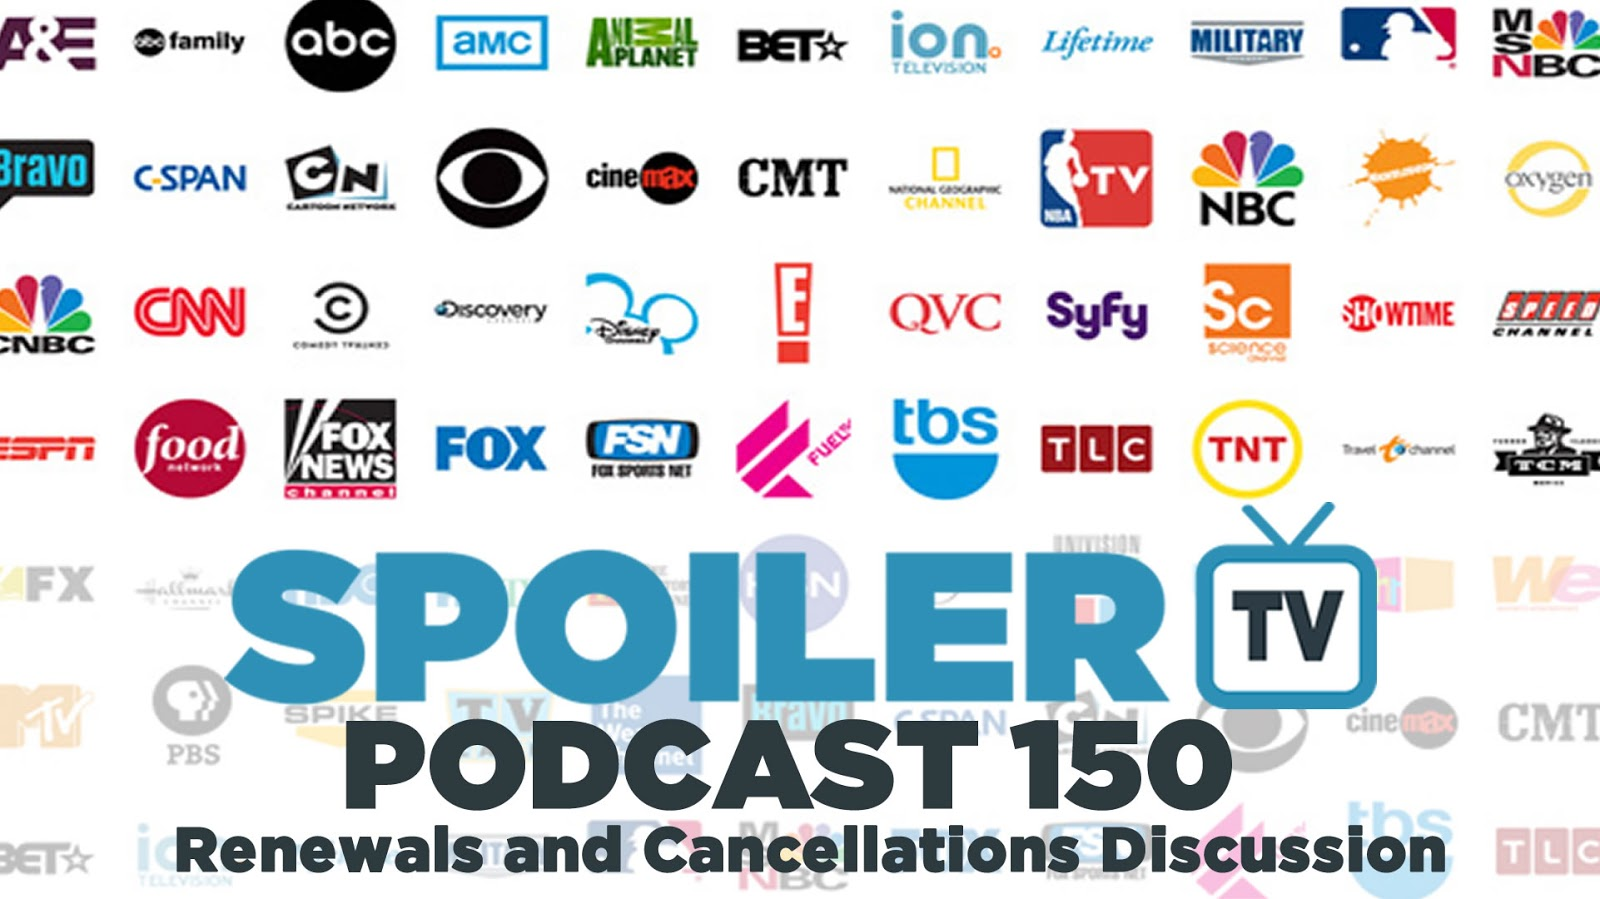 STV Podcast 150 - Renewals and Cancellations Discussion